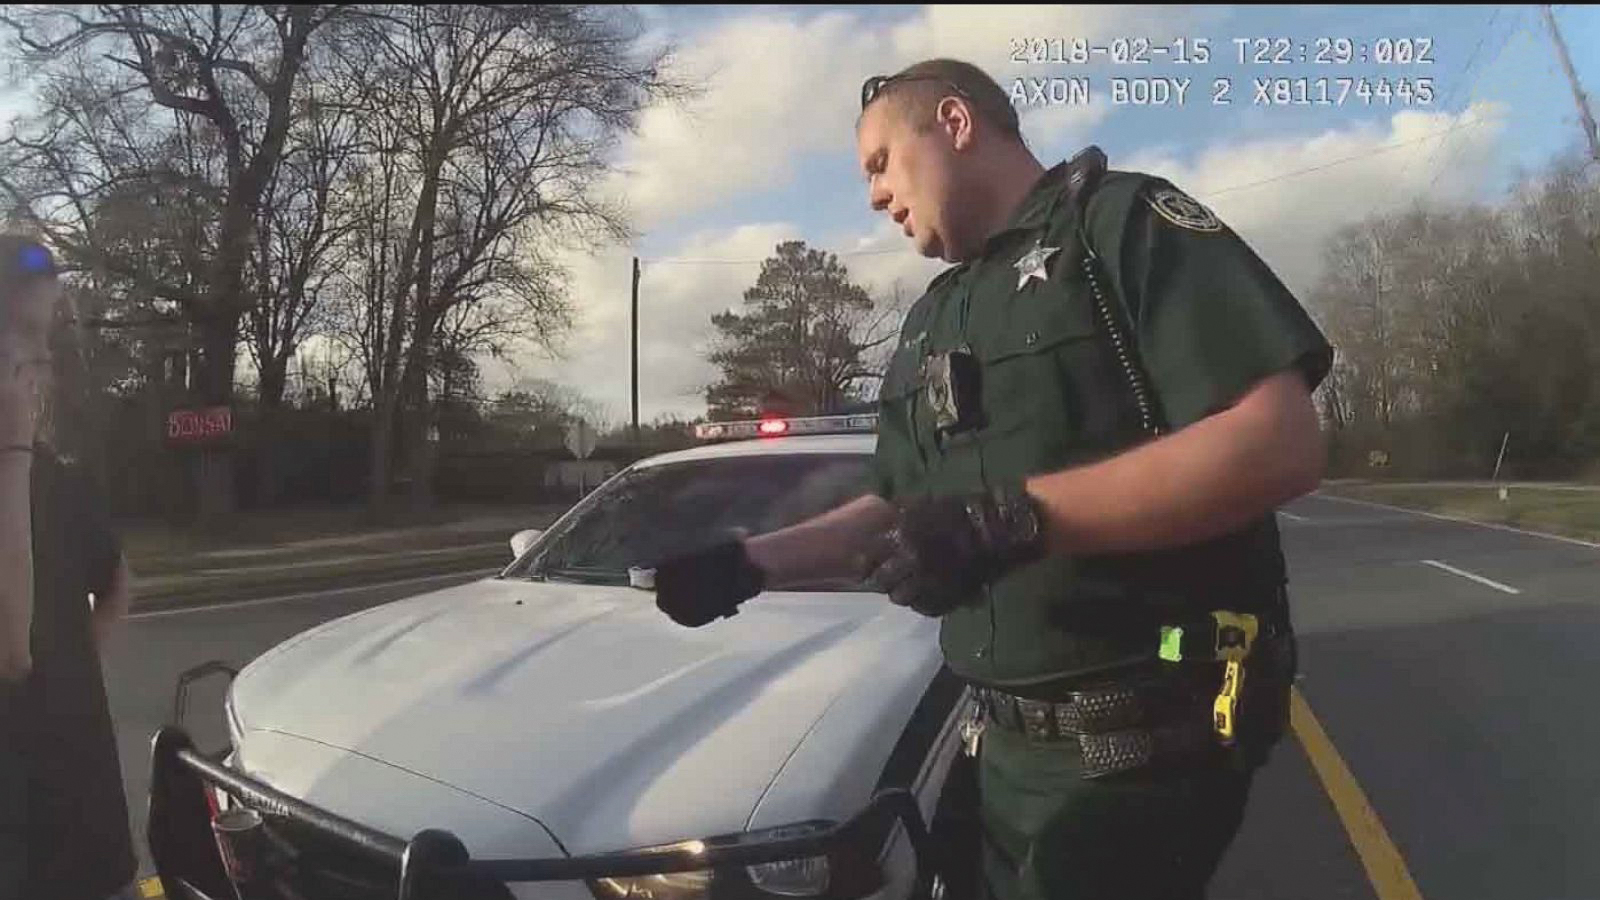 The video, which Wester recorded after mistakenly believing he had shut off his body and dash cam, shows the officer pulling a woman over for an alleged traffic violation.